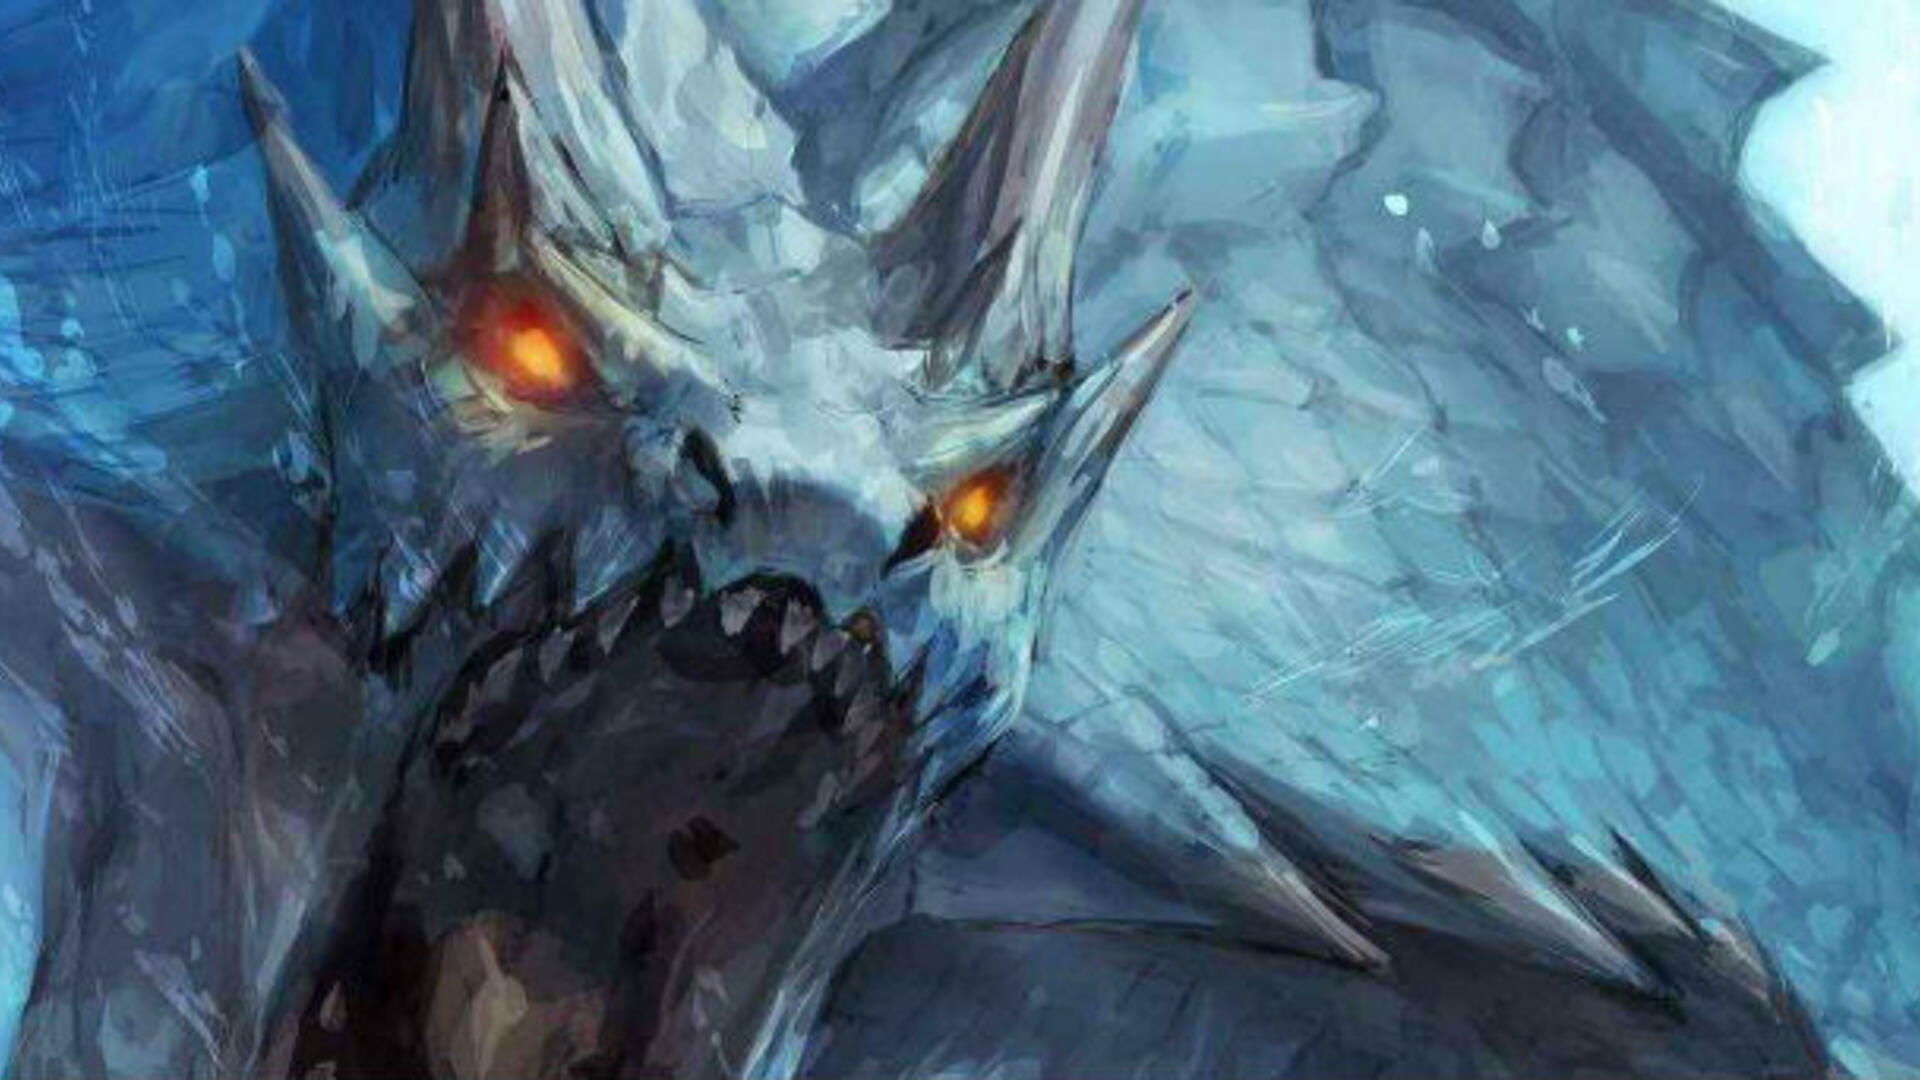 Lagiacrus was Prototyped for Monster Hunter: World